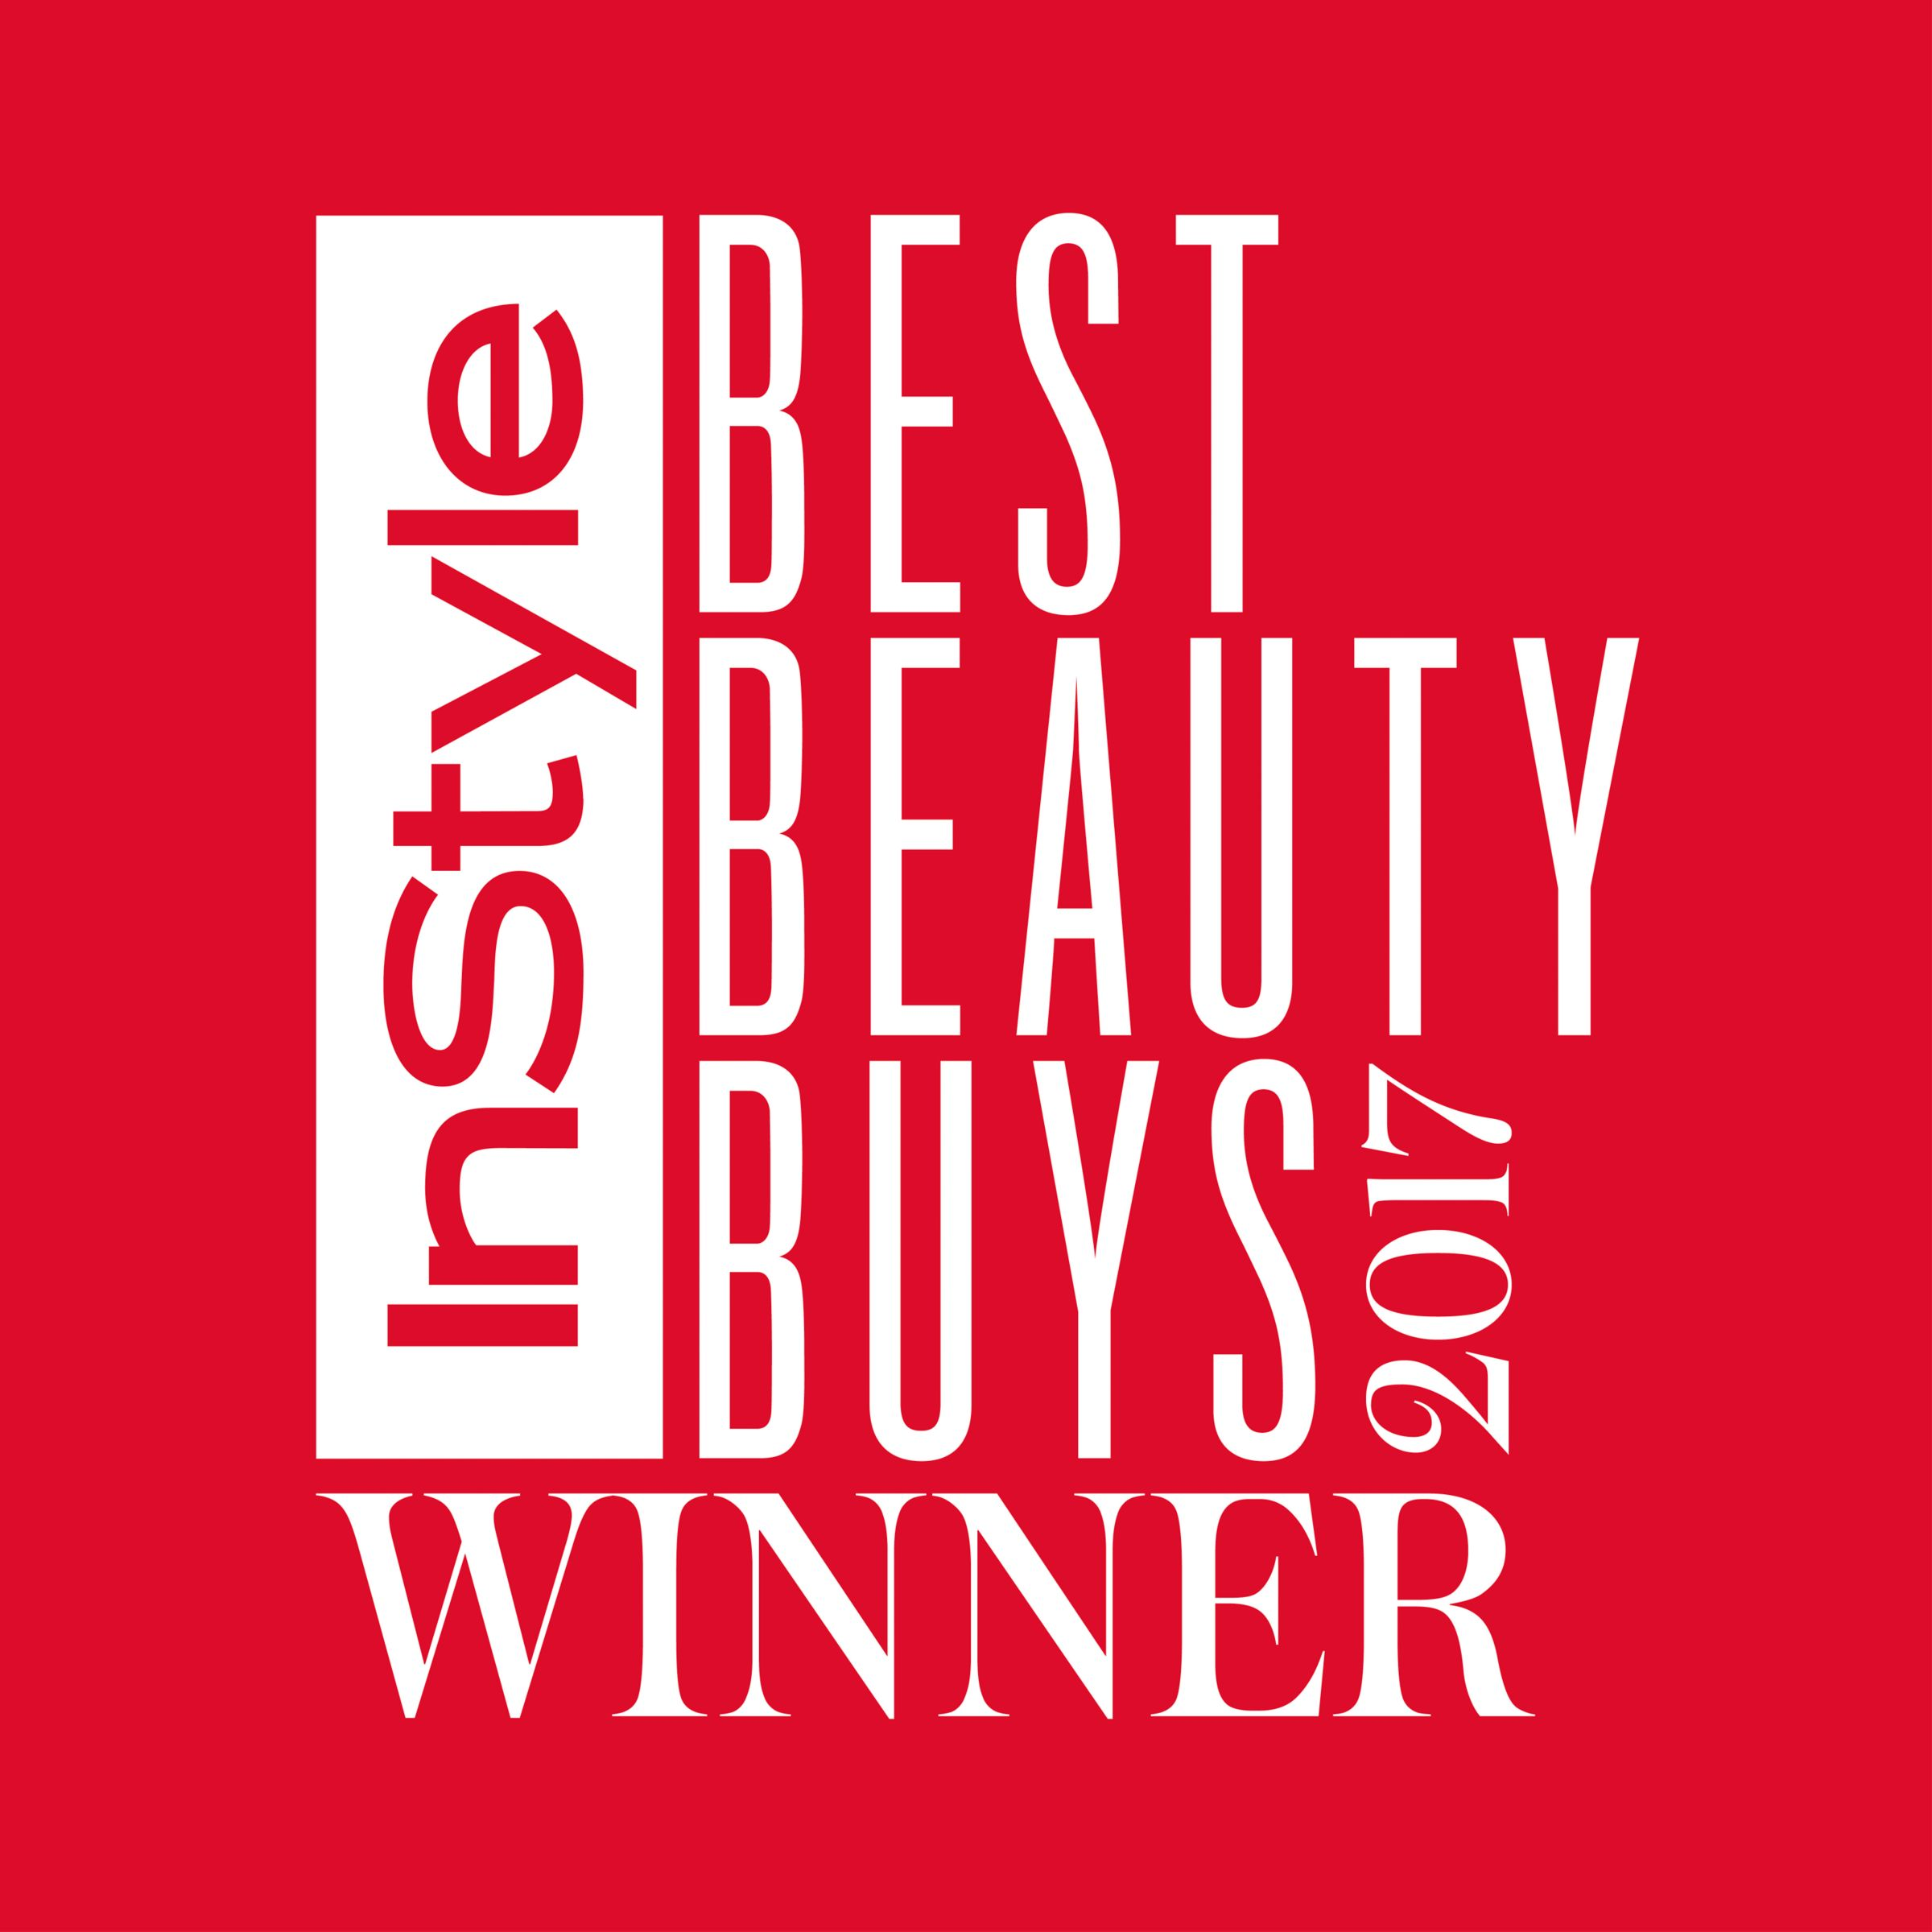 Best Beauty Buys Winner 2017